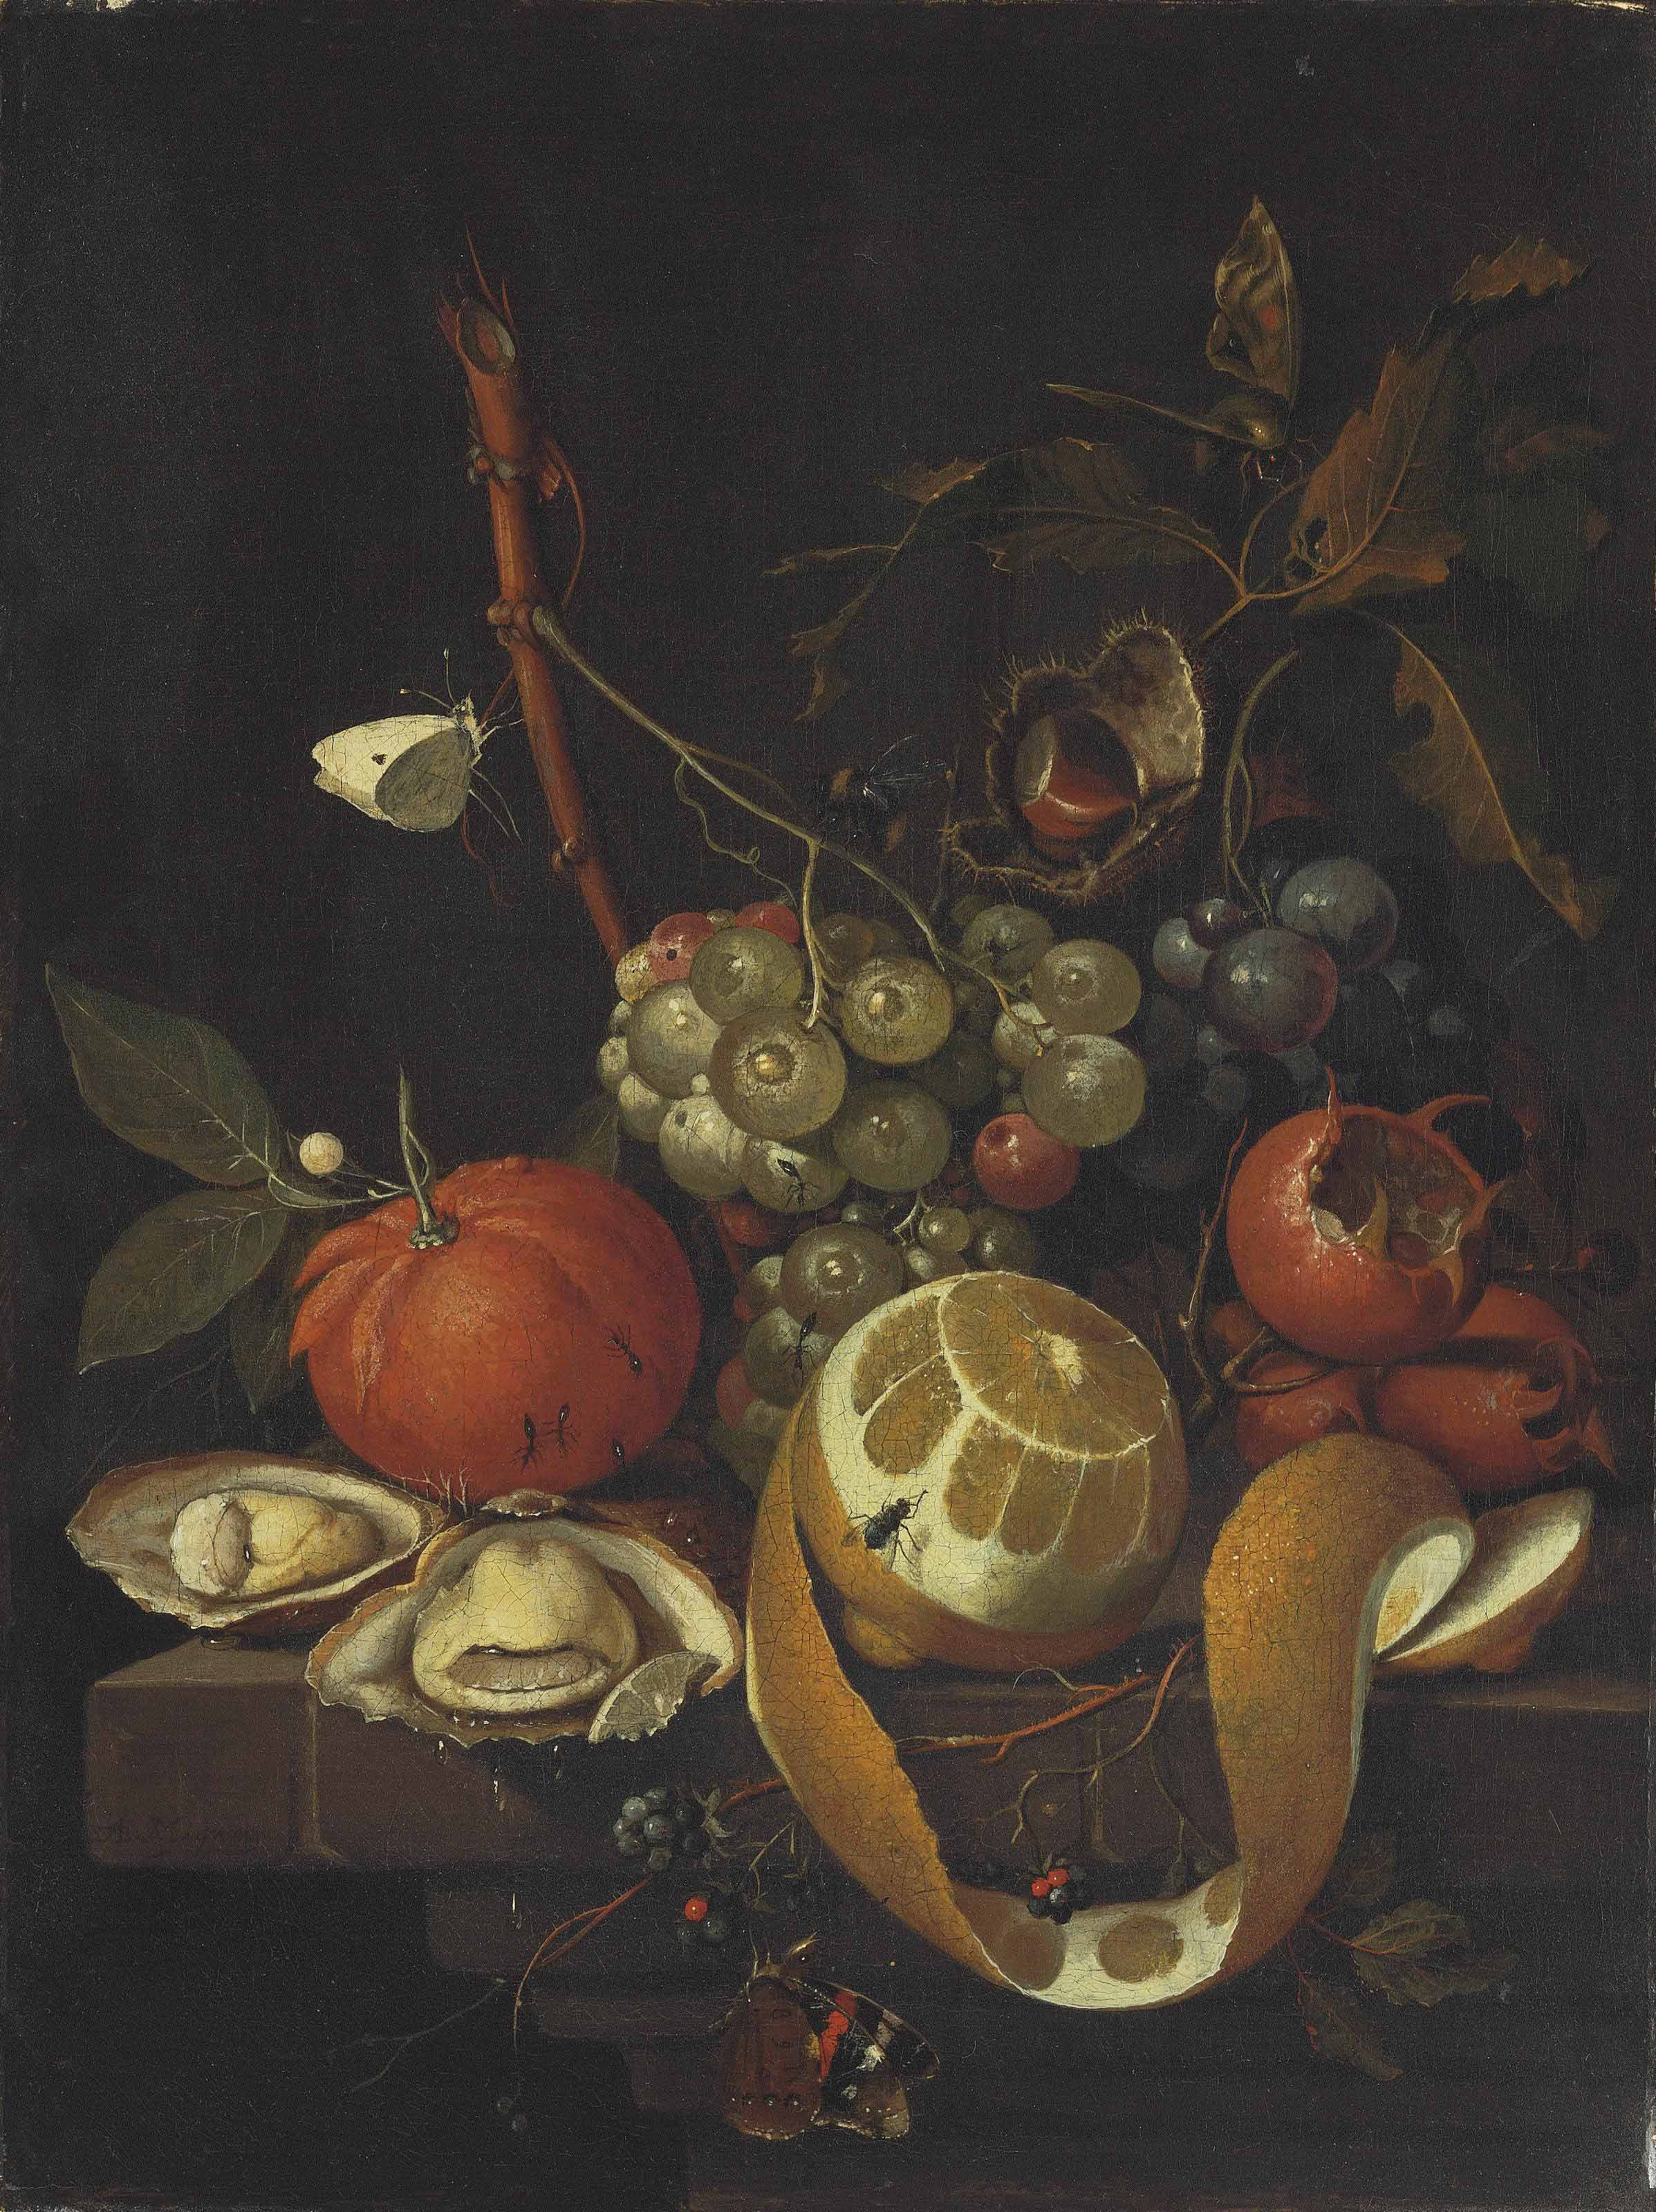 Grapes, a lemon, oysters, a chestnut, blackberries and other citrus fruits on a stone ledge with butterflies, a fly, a bee and ants